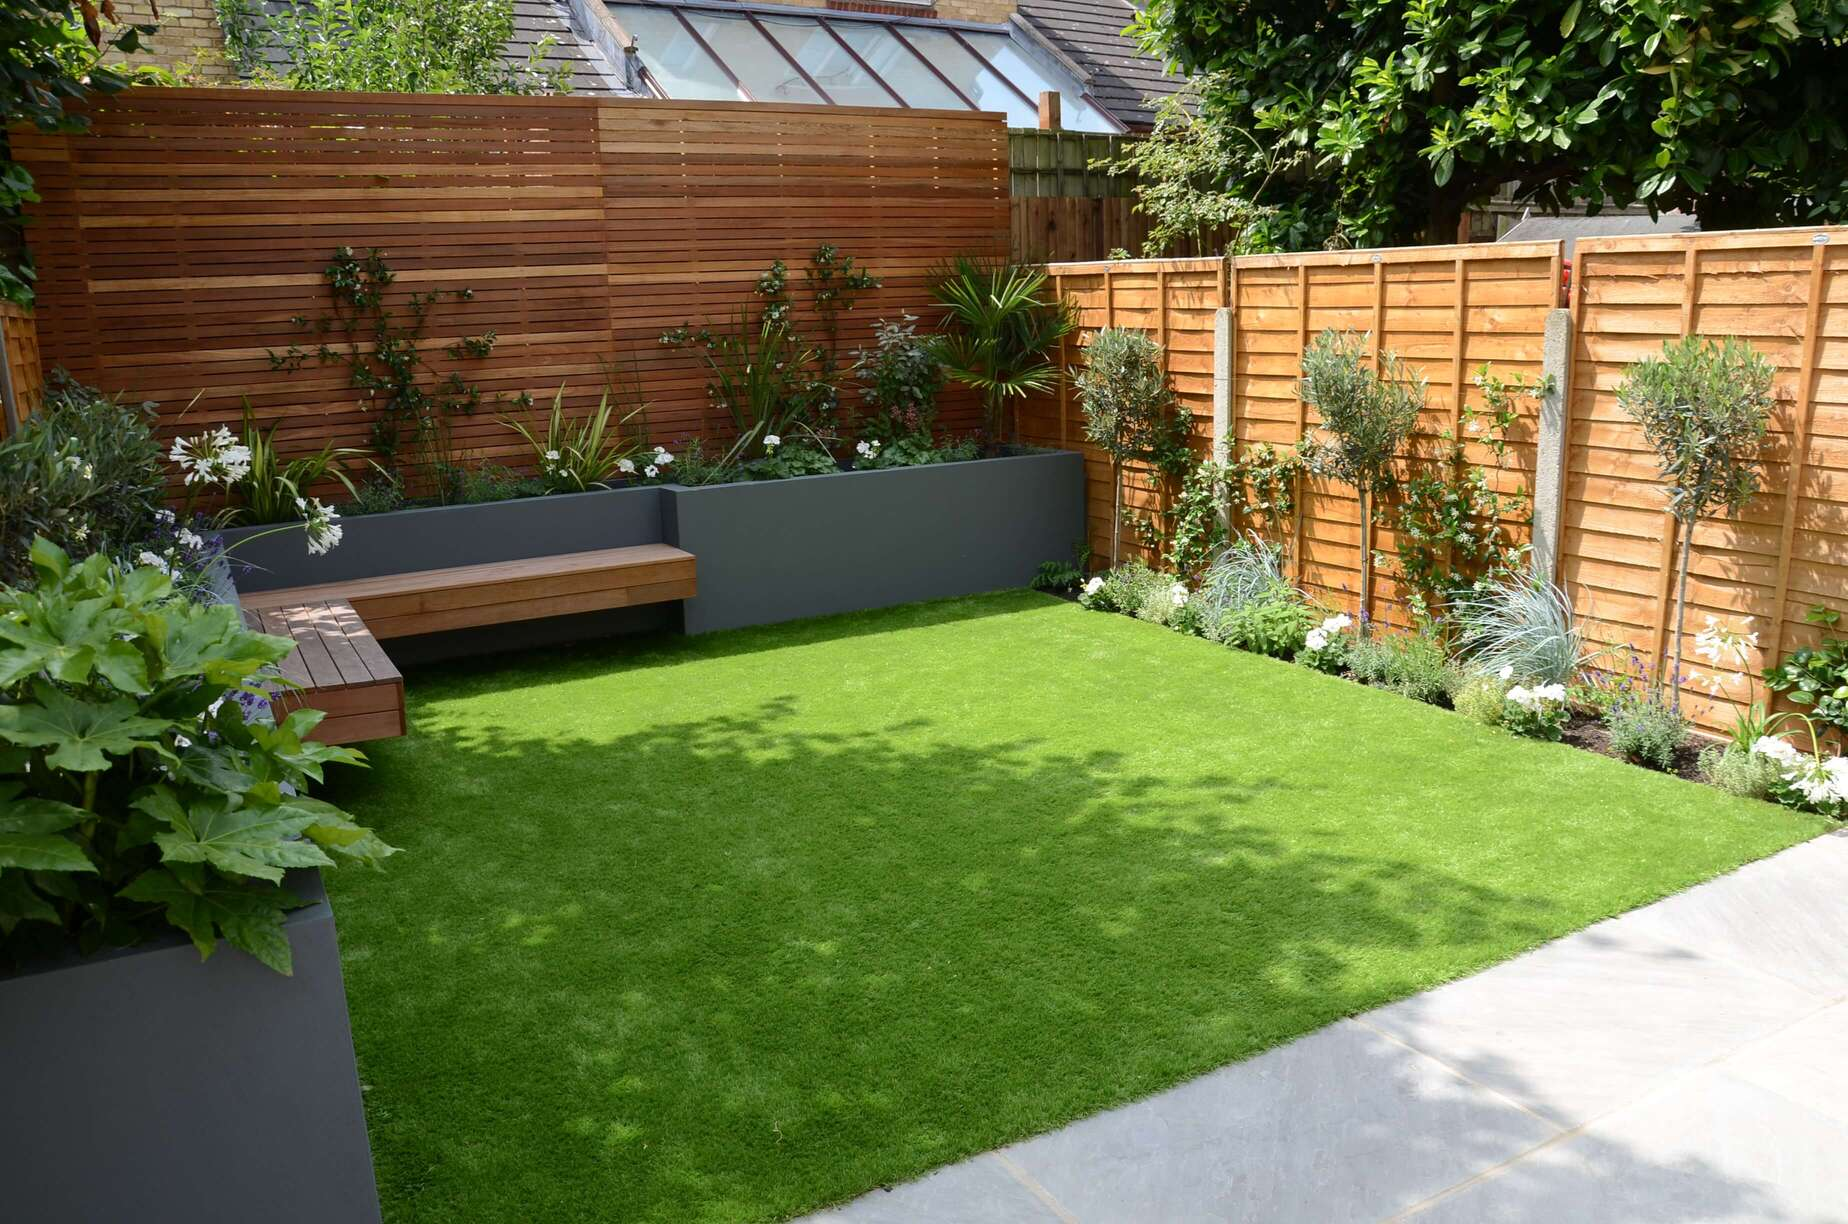 Few Small Garden Designs That You Can Have In Your Apartment on Backyard Patio Layout id=61143